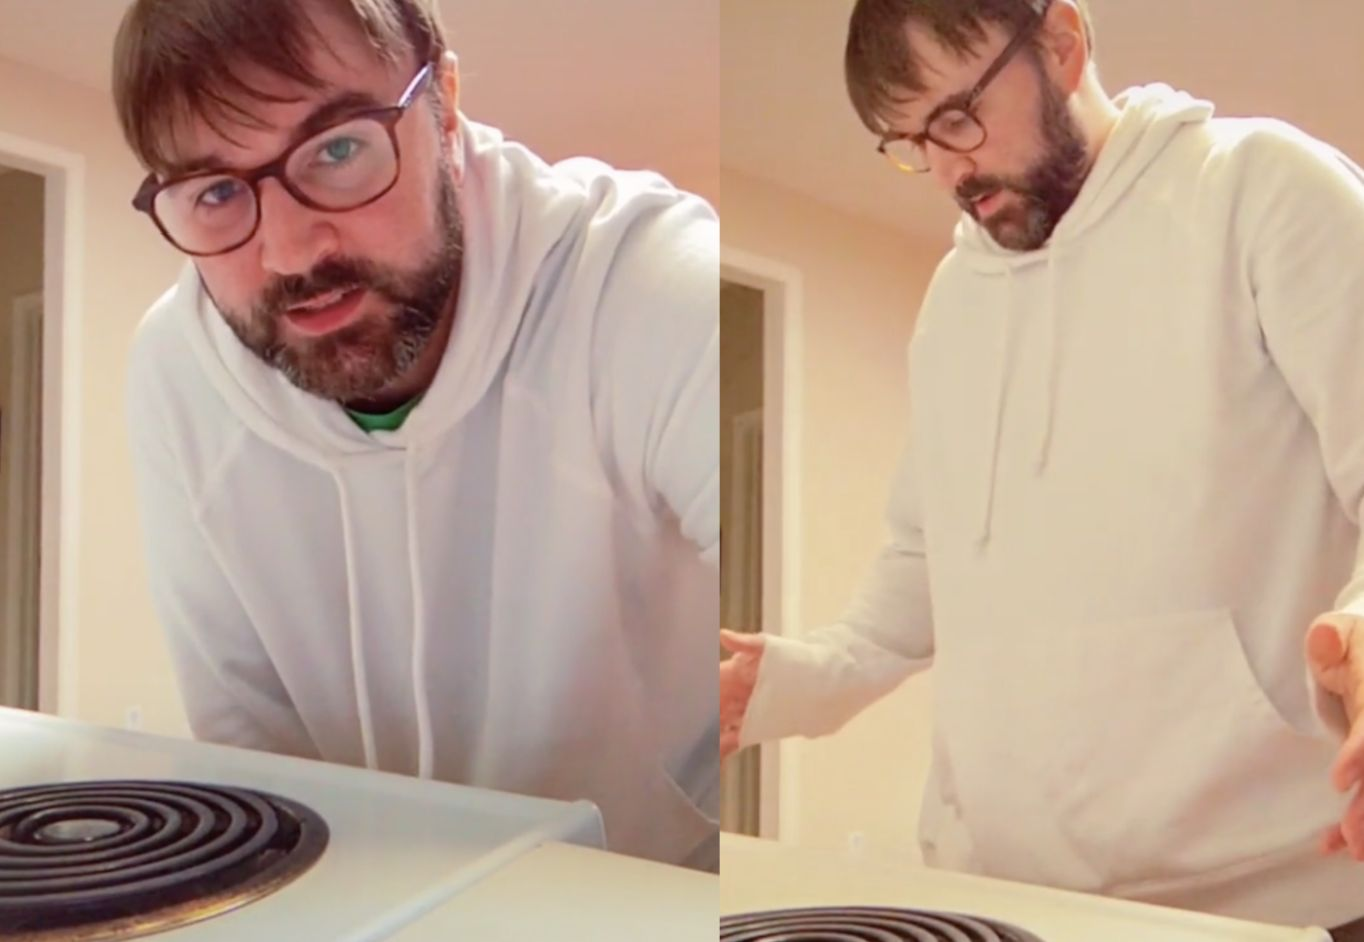 TikTokers stunned by life-changing stove cleaning hack: 'There's no way'